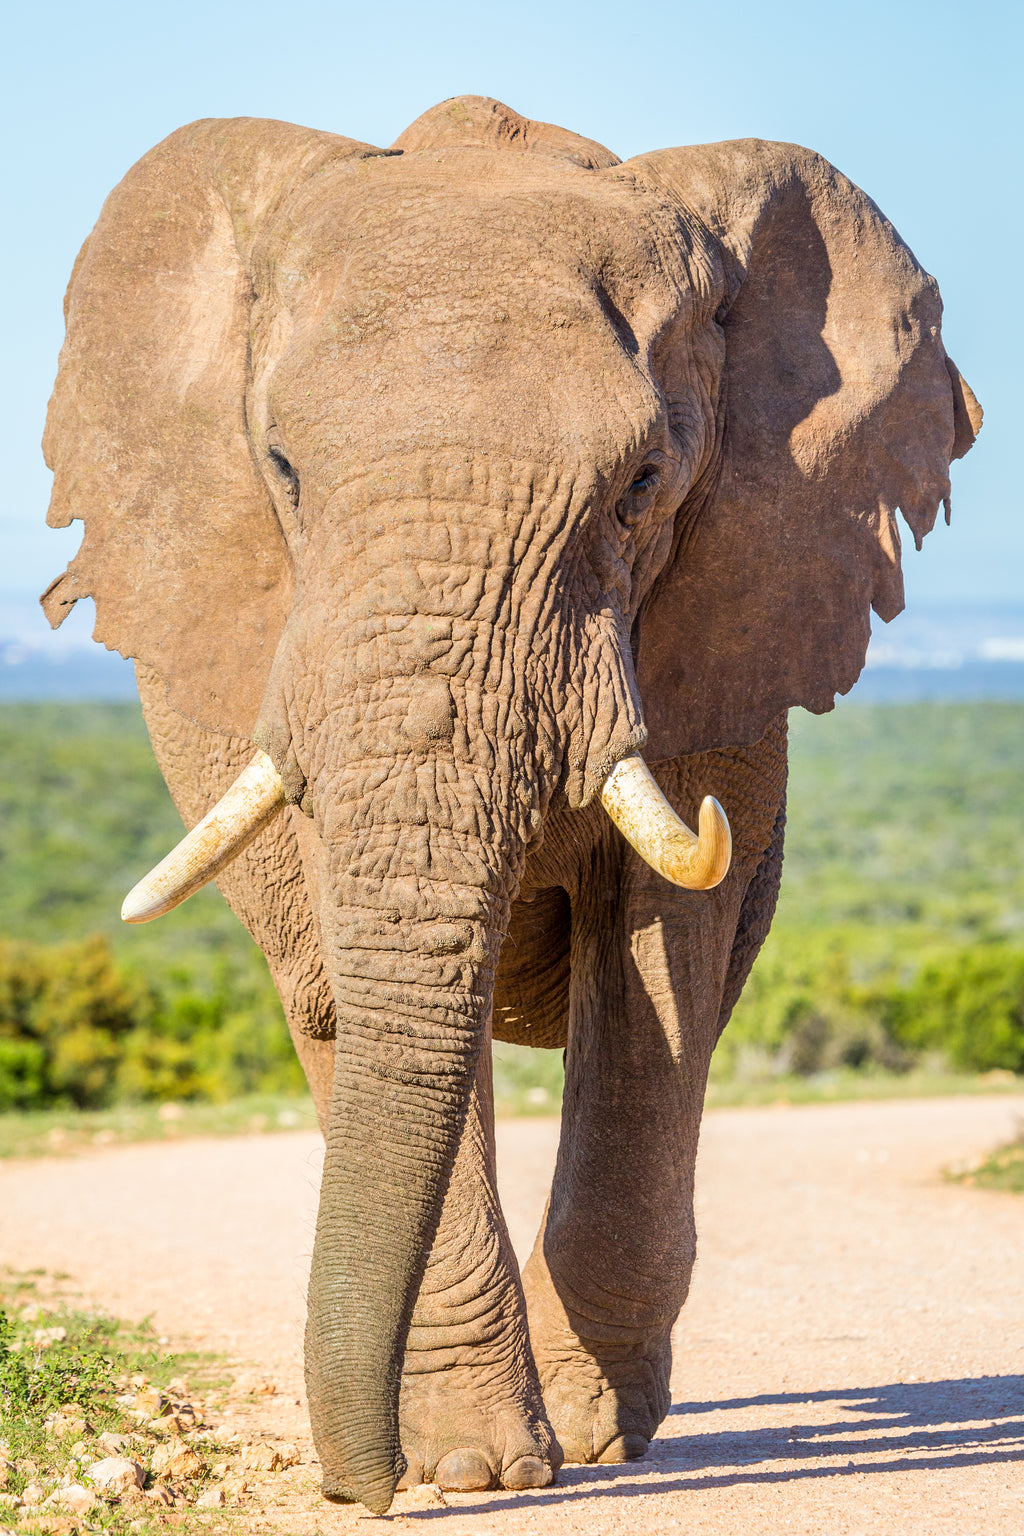 Elephant, Addo Elephant Park, South Africa, Travel Wildlife Photography